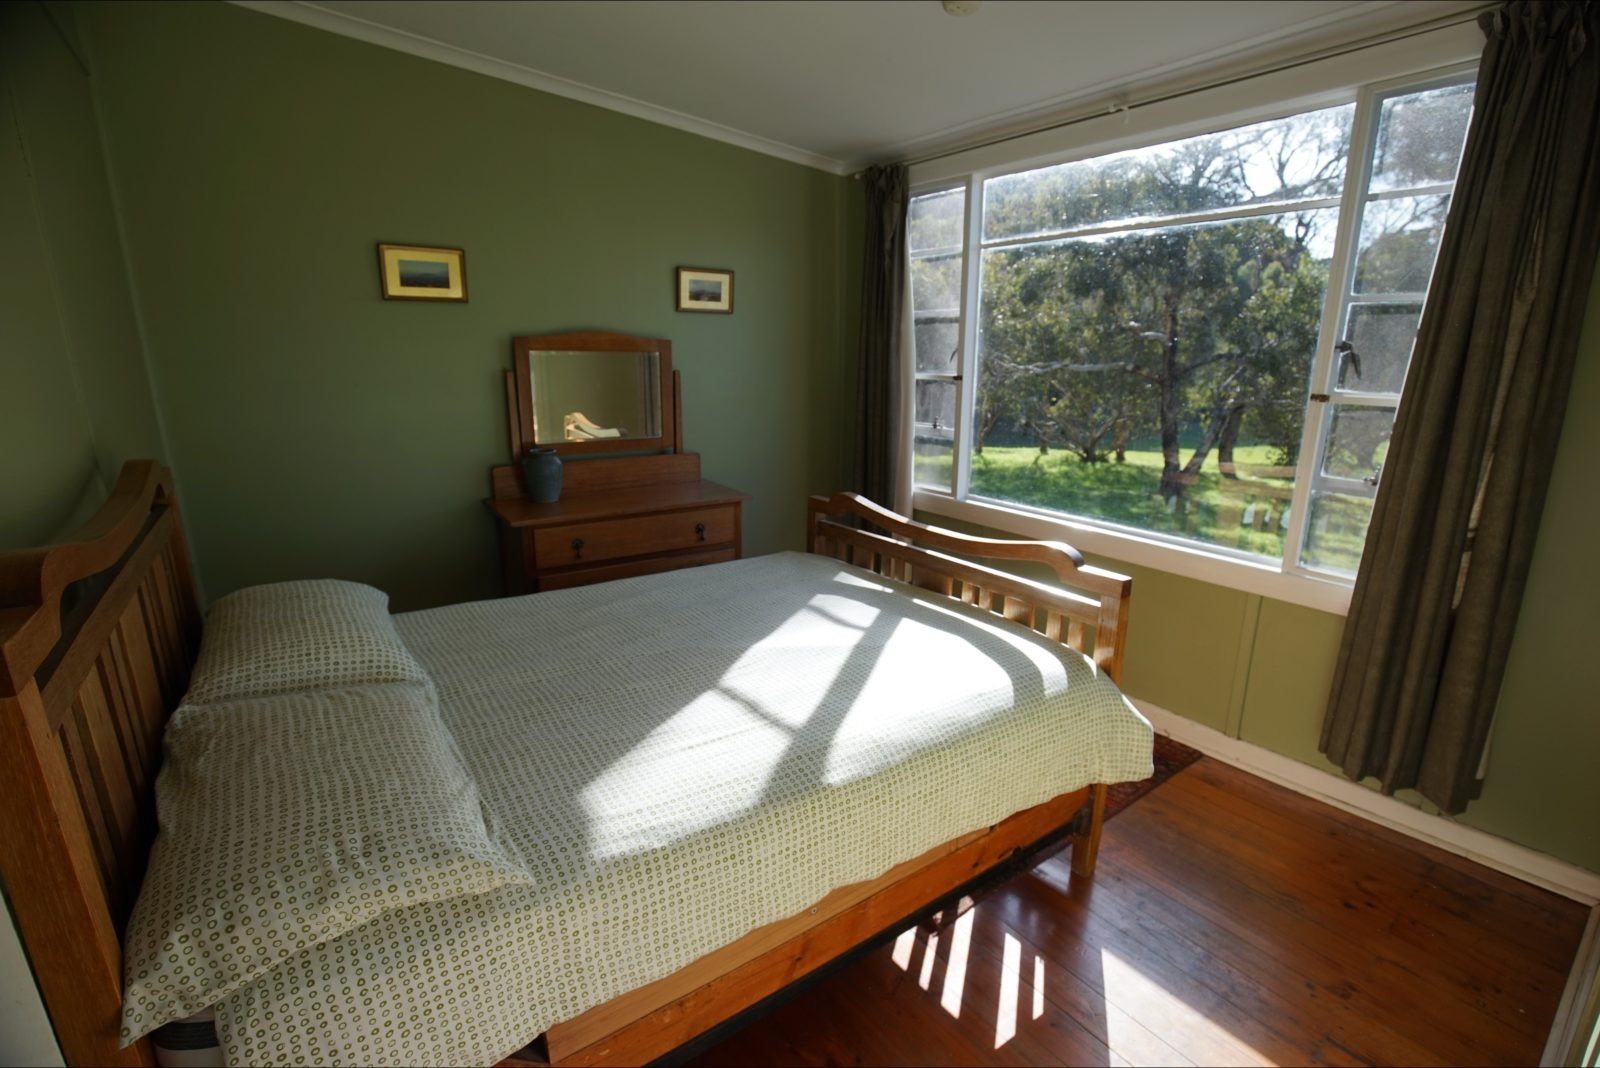 The main bedroom overlooks the stringybark forest and is next to the sunrroom